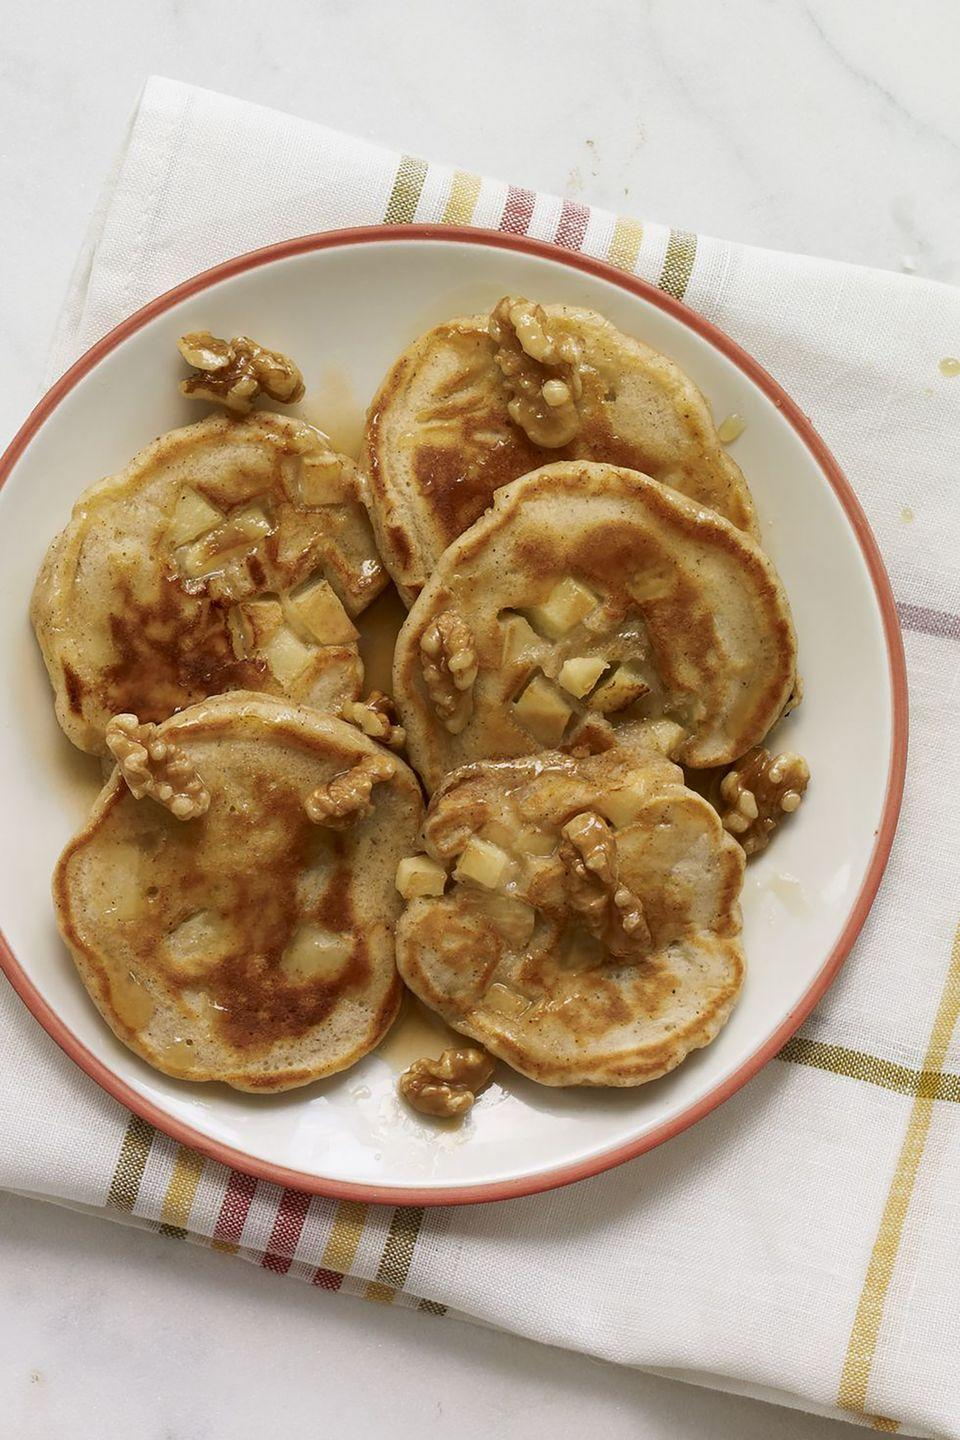 """<p>If Mom has a sweet tooth, start her Mother's Day off right with these pancakes that are packed with spice and topped with diced apples. </p><p><strong><a href=""""https://www.womansday.com/food-recipes/food-drinks/recipes/a12264/apple-pie-pancakes-maple-walnuts-recipe-wdy0113/"""" rel=""""nofollow noopener"""" target=""""_blank"""" data-ylk=""""slk:Get the Apple Pie Pancakes with Maple Walnuts recipe."""" class=""""link rapid-noclick-resp""""><em>Get the Apple Pie Pancakes with Maple Walnuts recipe.</em></a></strong></p>"""